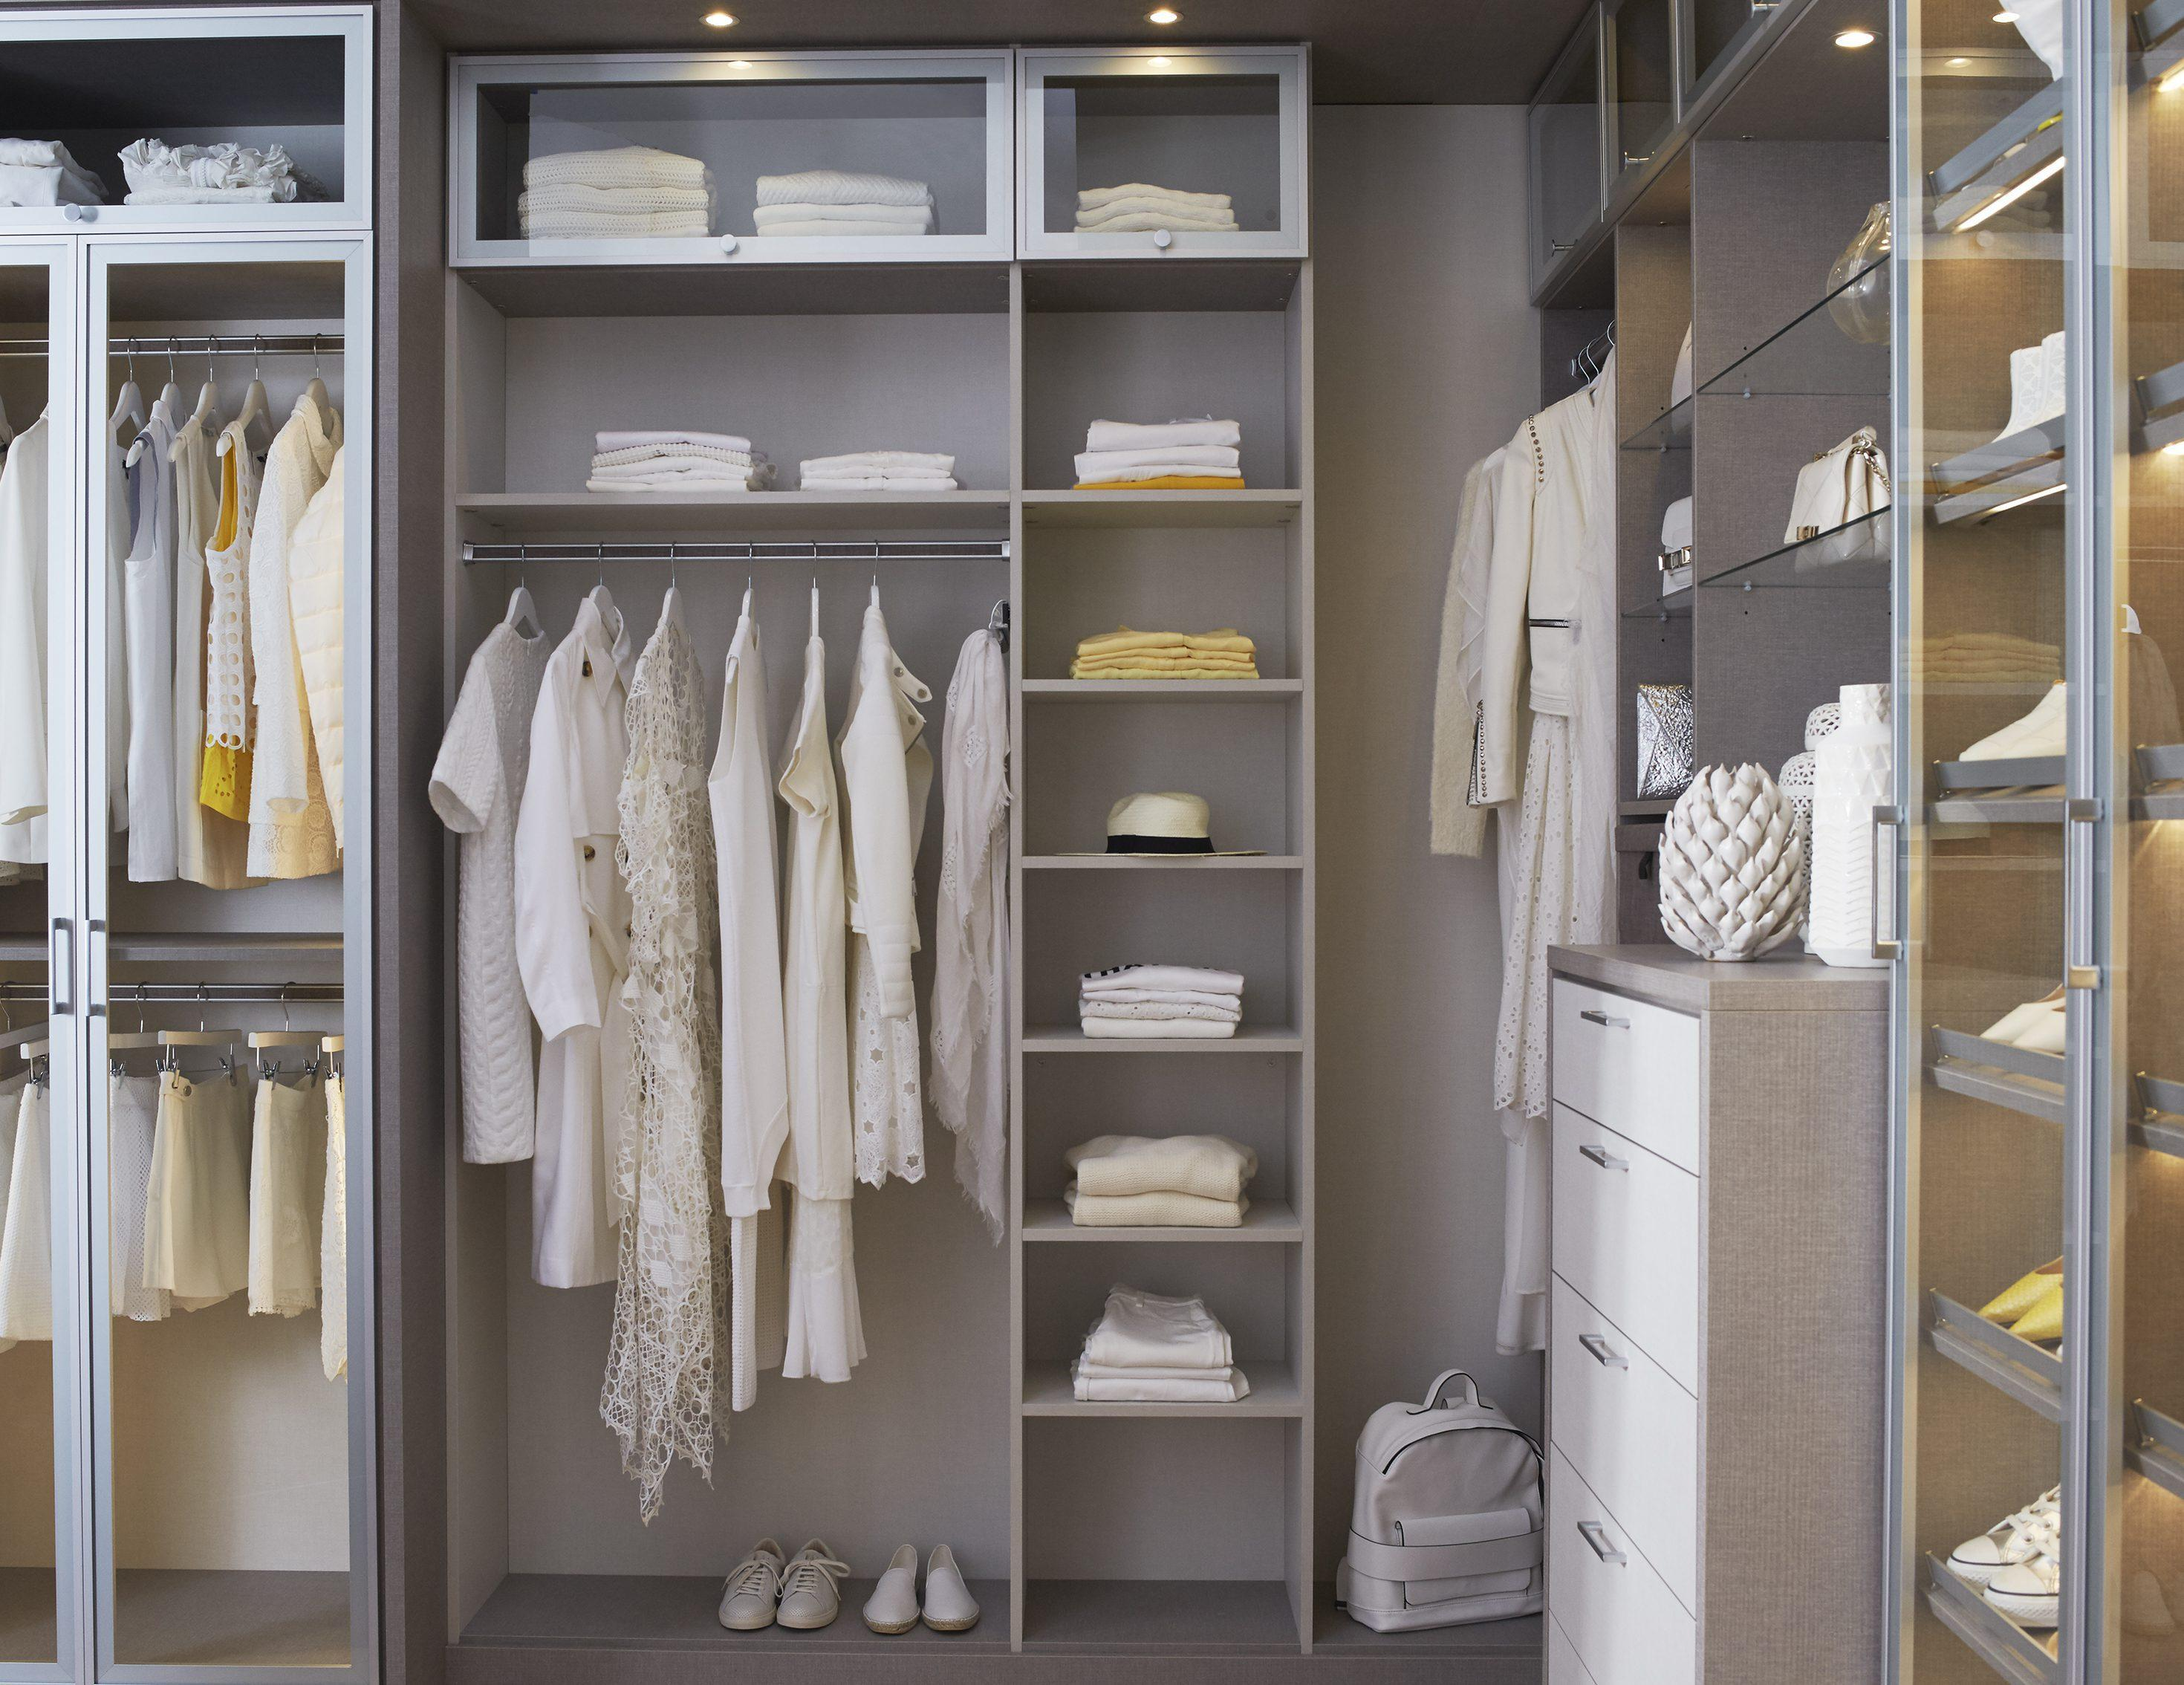 Beau CALIFORNIA CLOSETS BRINGS CLOSET ORGANIZERS TO THE TRI CITIES AREA